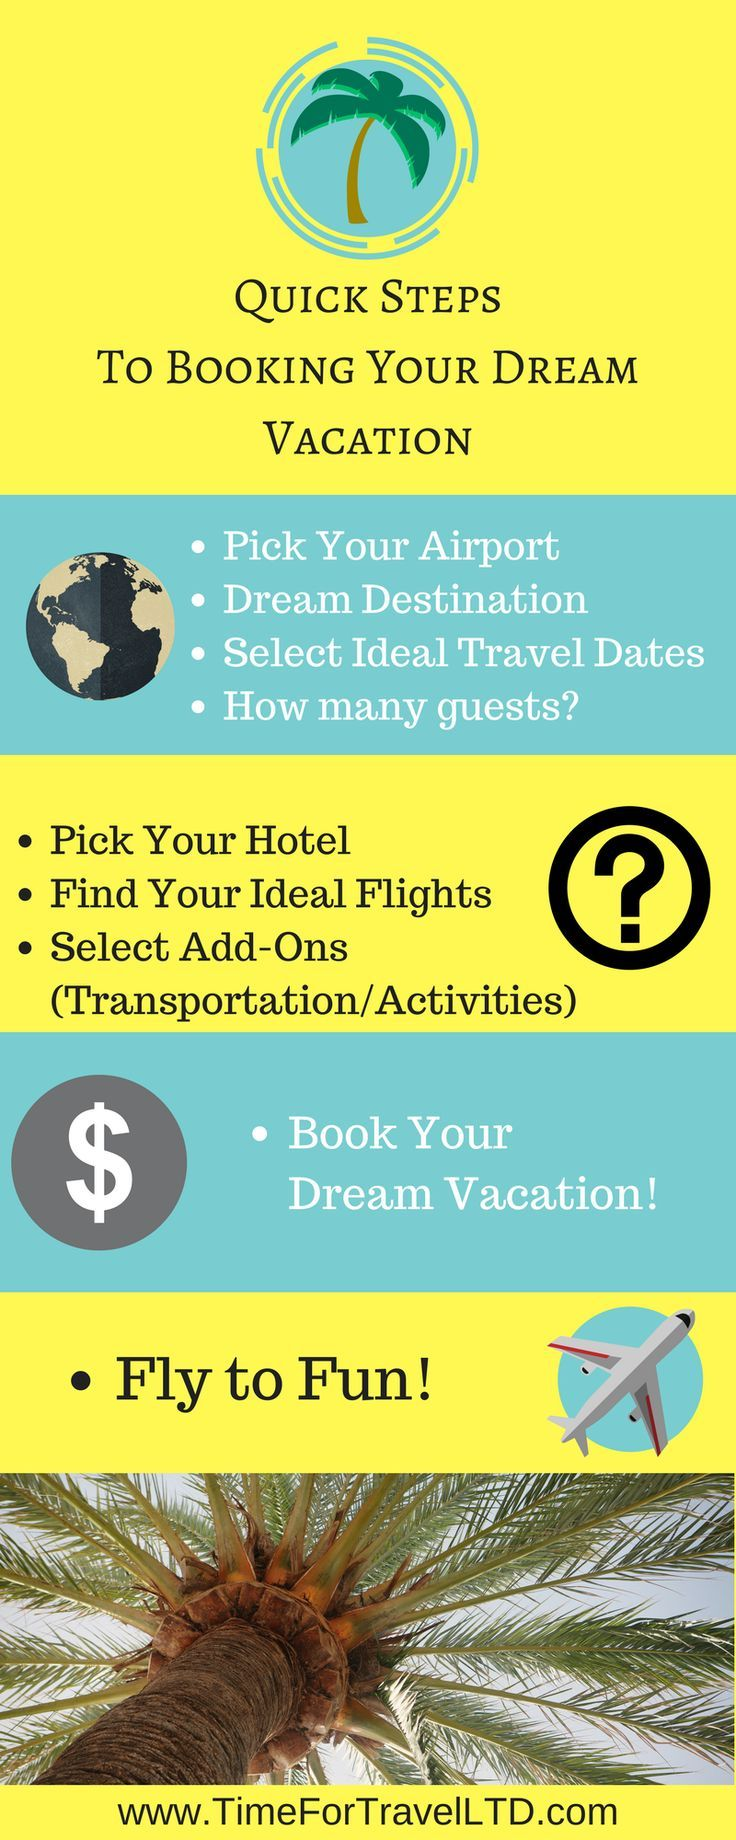 Want to make sure you're getting the best vacation deals on your own, but want a Travel Agency to back if you have any questions or requests? Check out our booking engine, be sure to select a great promo code for further savings! #travelagency #vacations #travel #deals